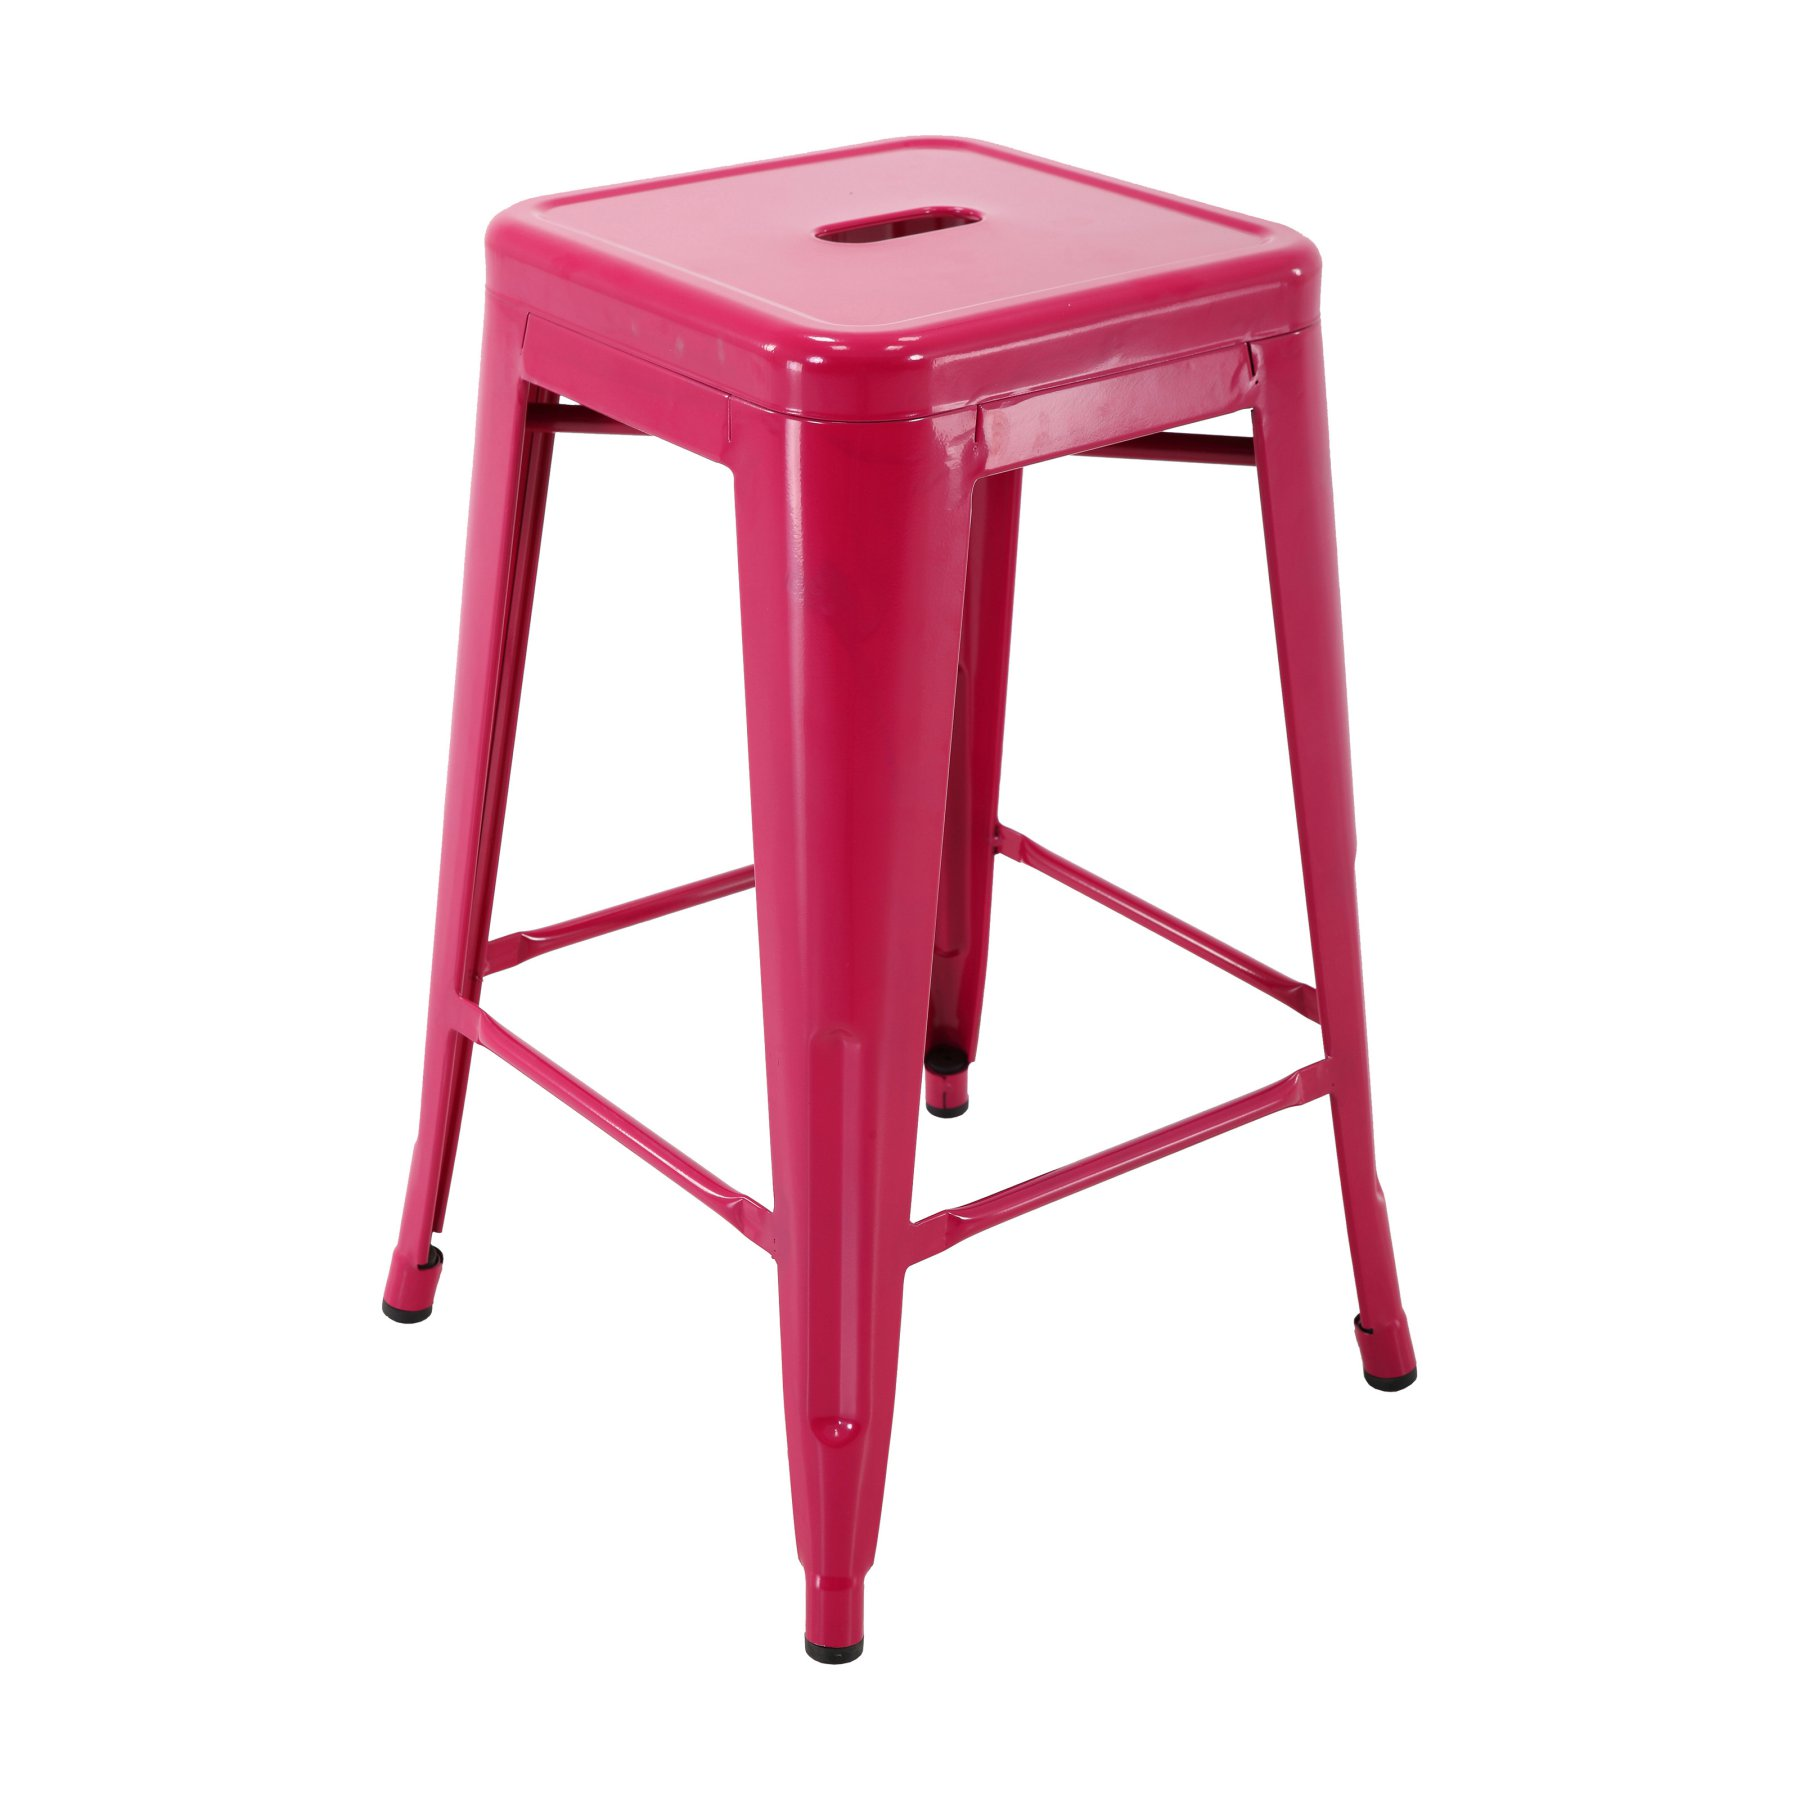 Brage Living 24 In Backless Bar Stool Fuchsia Metal Stool Stool Bar Stools